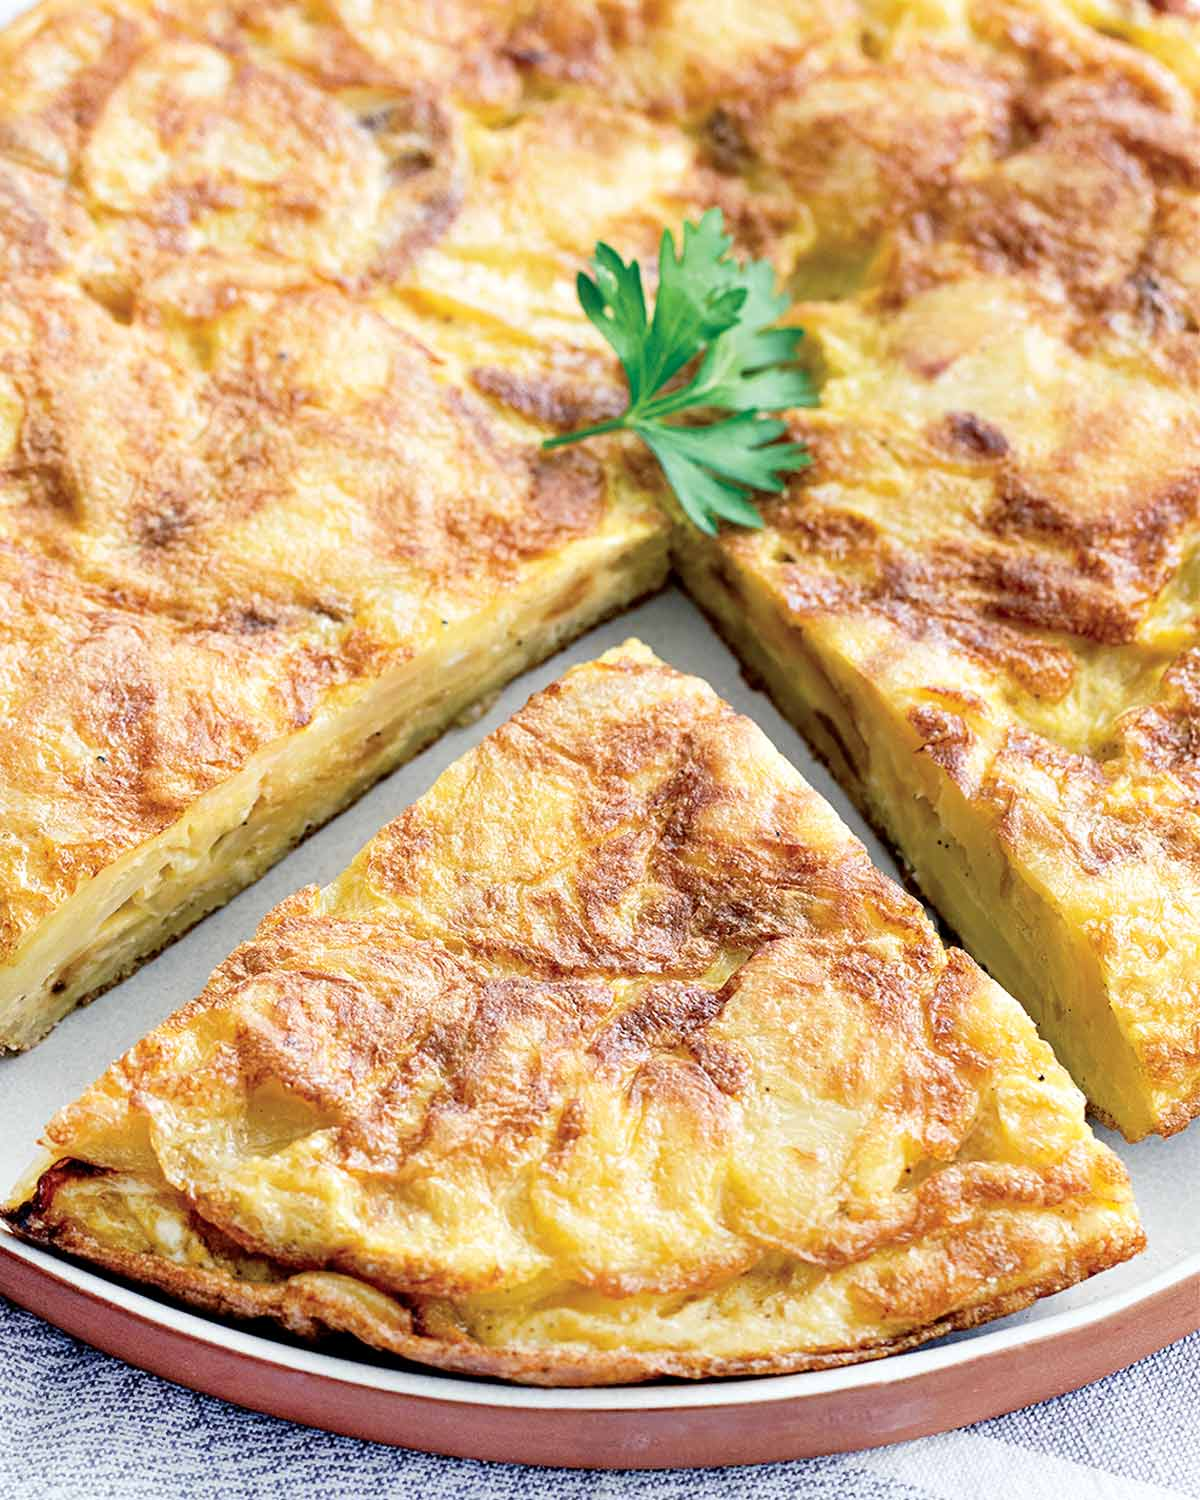 spanish tortilla on a plate with a slice cut out.